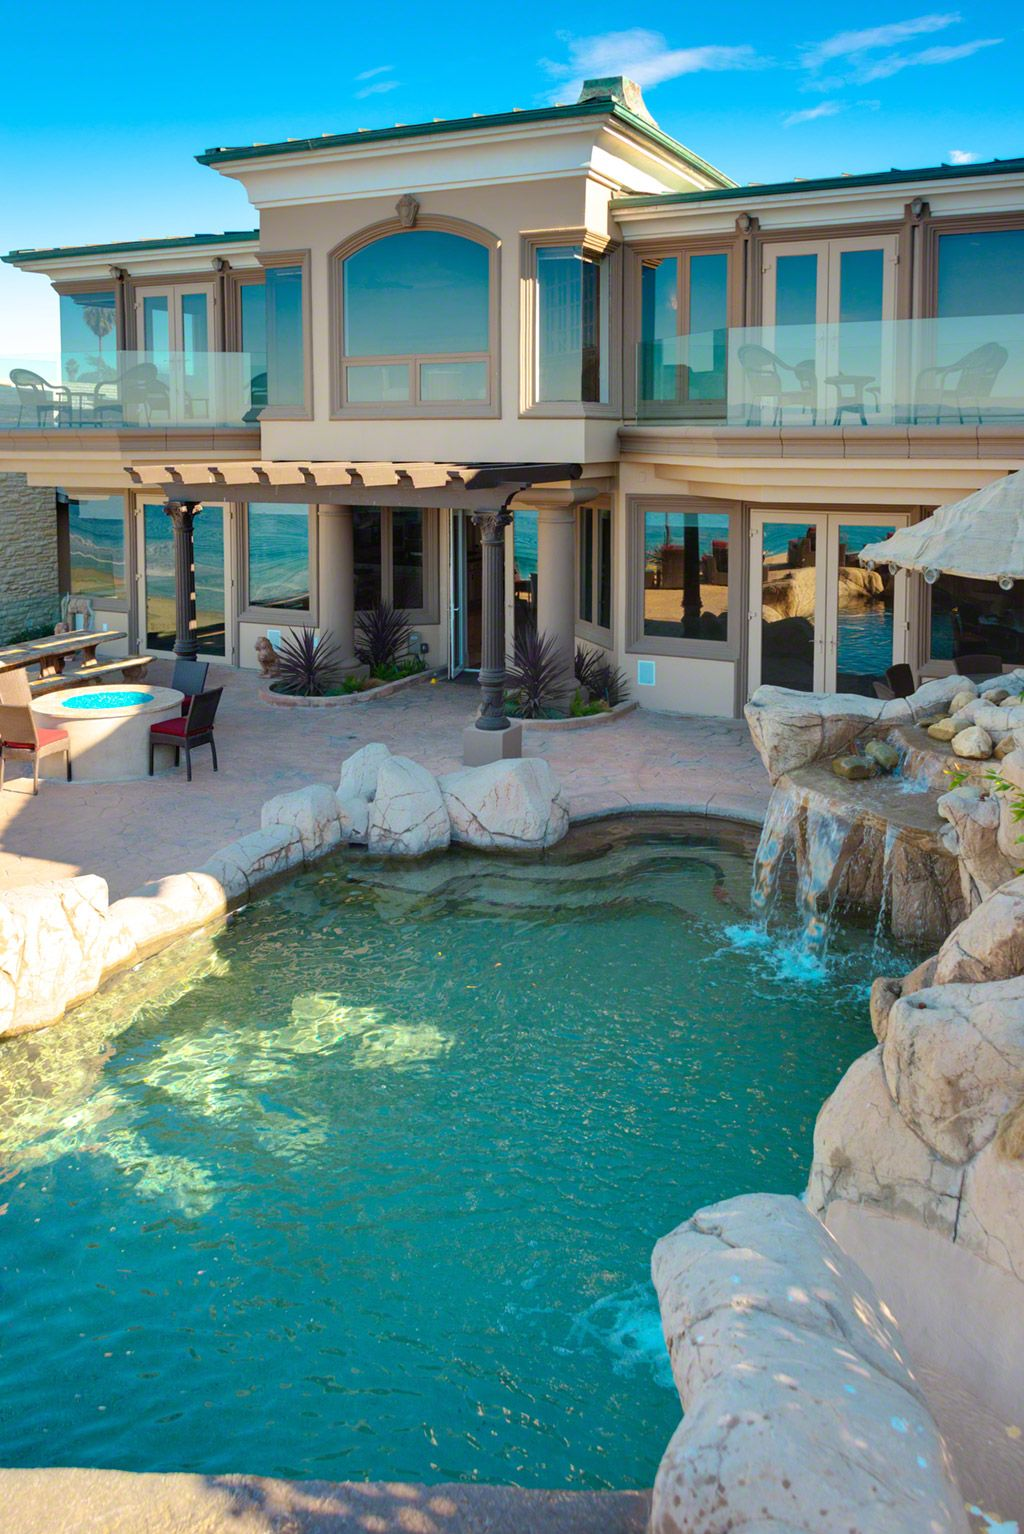 Redondo beach luxury california los angeles luxury - Indoor swimming pools in los angeles ca ...